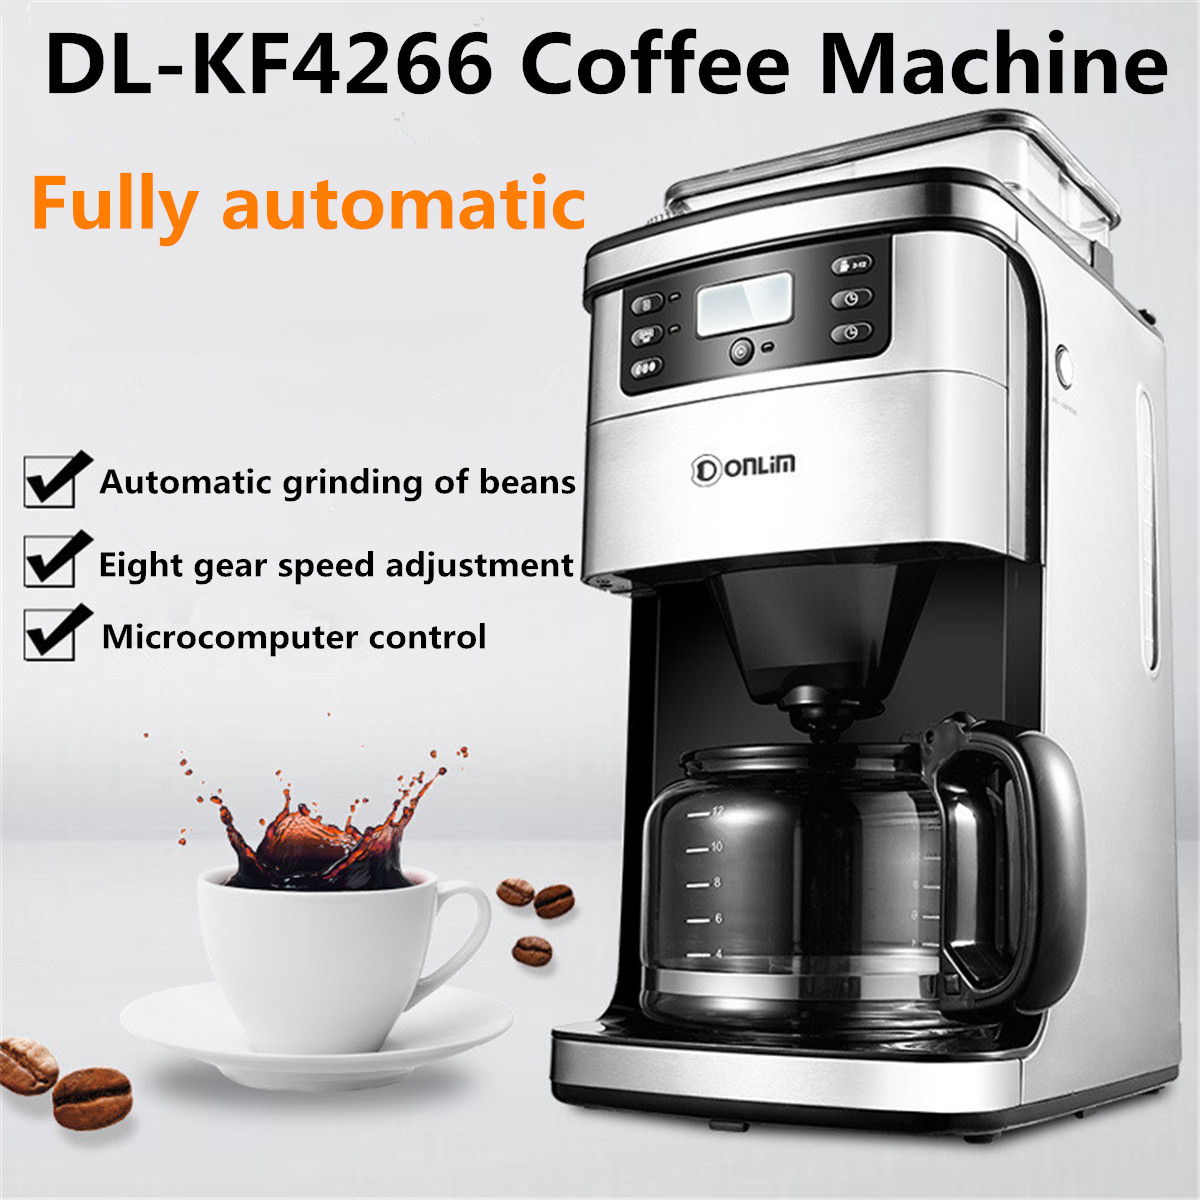 Smart Full Automatic American Coffee Machine/Drip Coffee Grinder With Glass Pot/Filter/Measuring Spoon Cappuccino Latte MakerSmart Full Automatic American Coffee Machine/Drip Coffee Grinder With Glass Pot/Filter/Measuring Spoon Cappuccino Latte Maker